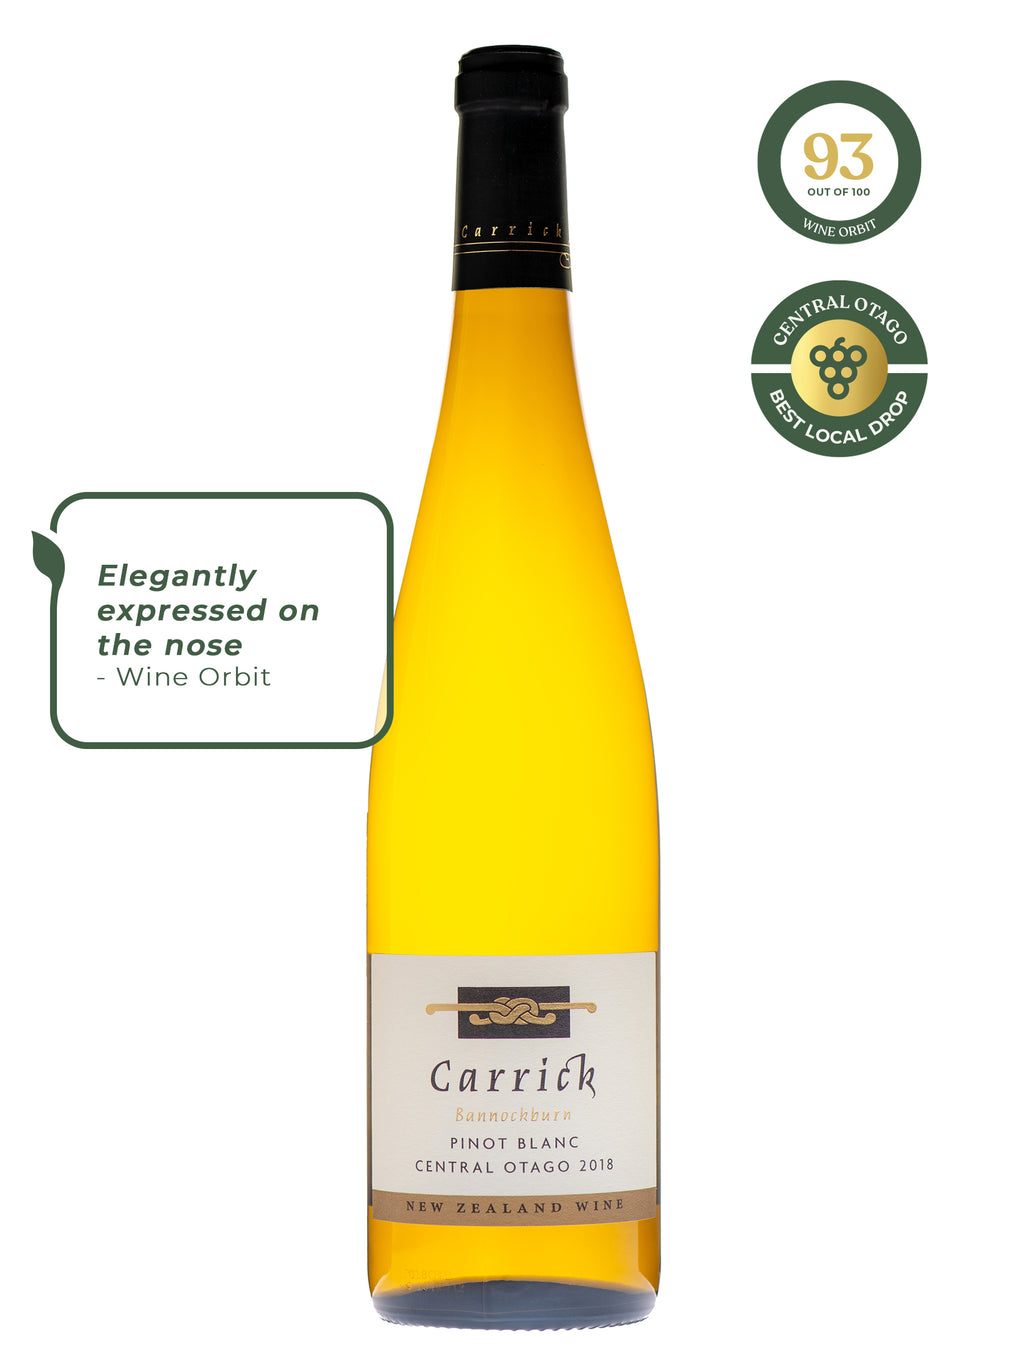 Carrick Winery, Pinot Blanc, Central Otago, Central Otago Wine, New Zealand Wine, New Zealand Winery, Online Wine Store, New Zealand Wine Shop, Small Business, Winetopia, Auckland Wine Events